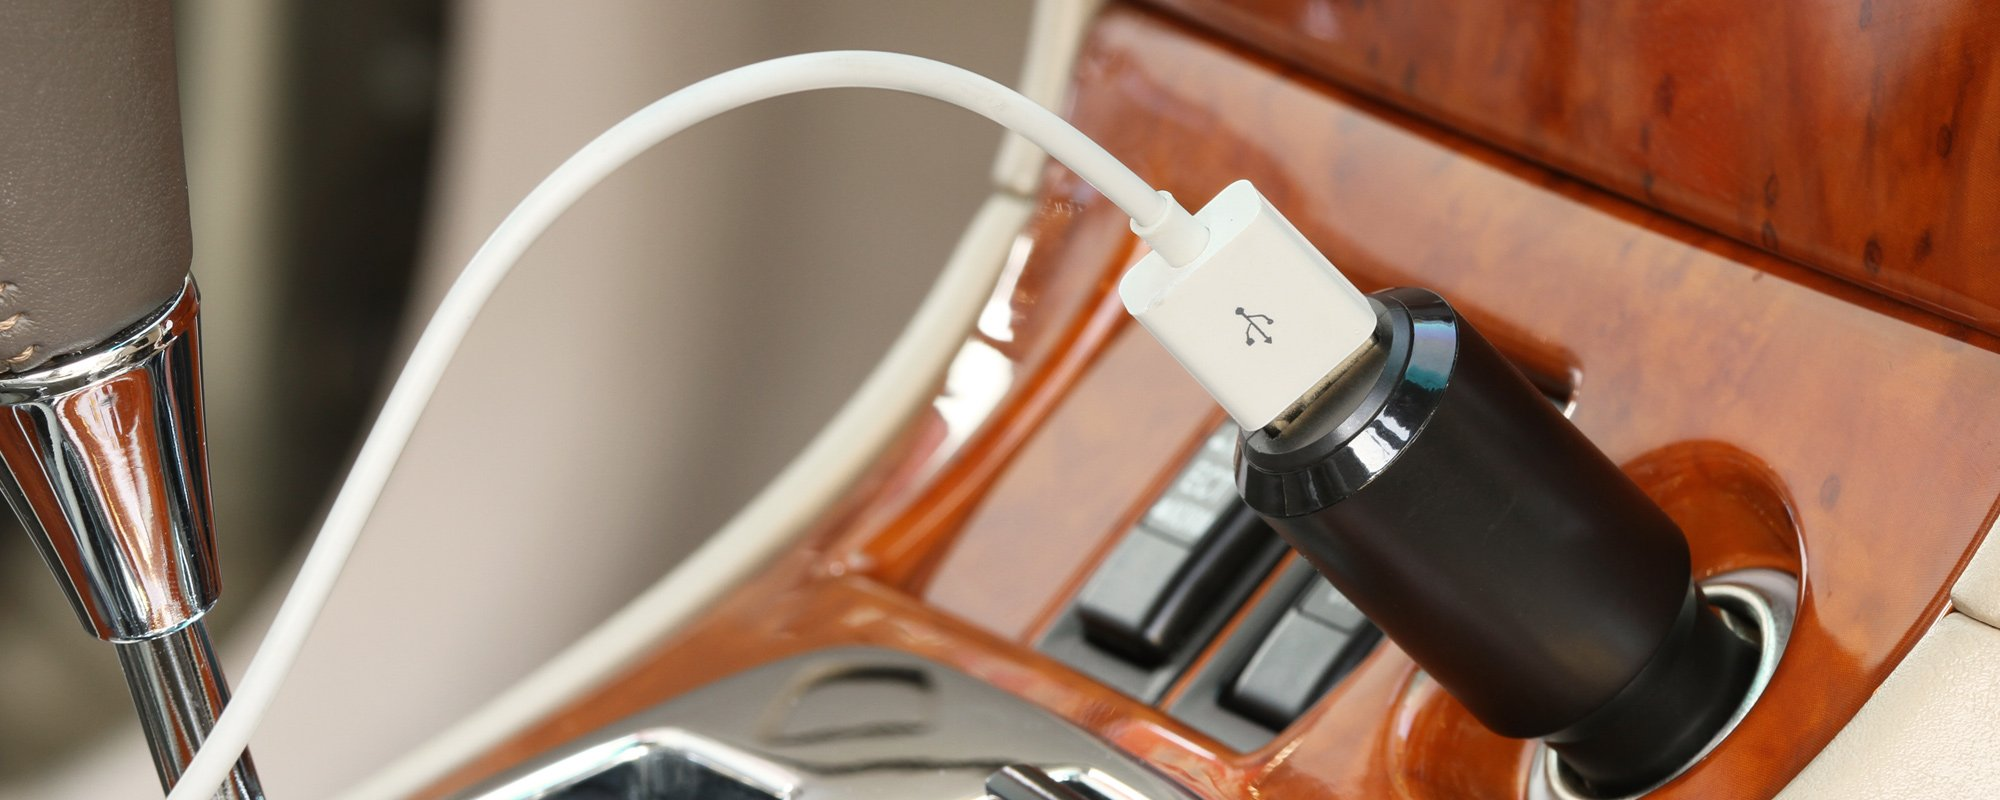 View of a car mobile charger